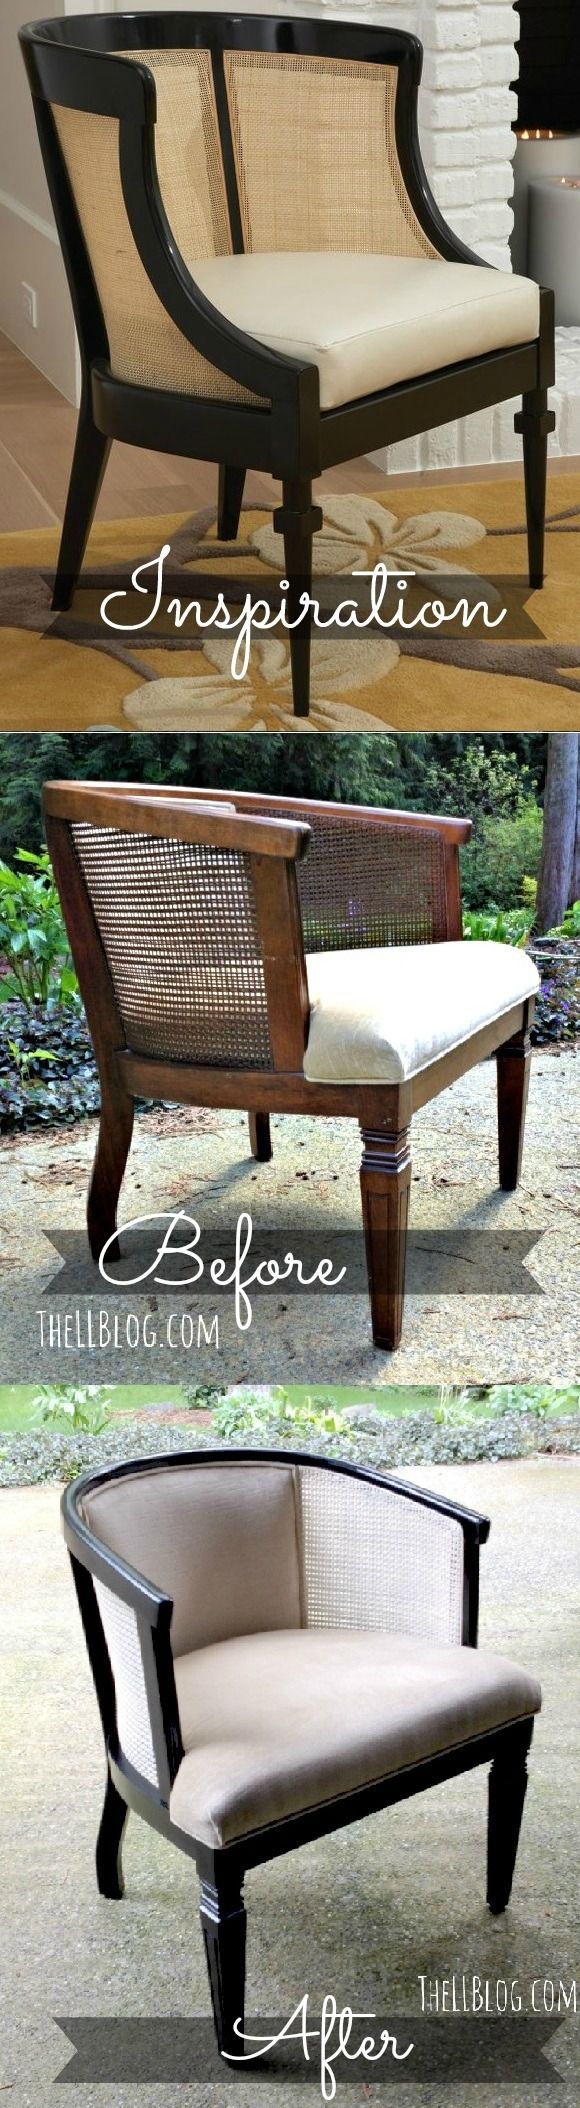 Inspiration to Reality. Easy Chair Makeover @ Last Legs Blog ...♥♥...